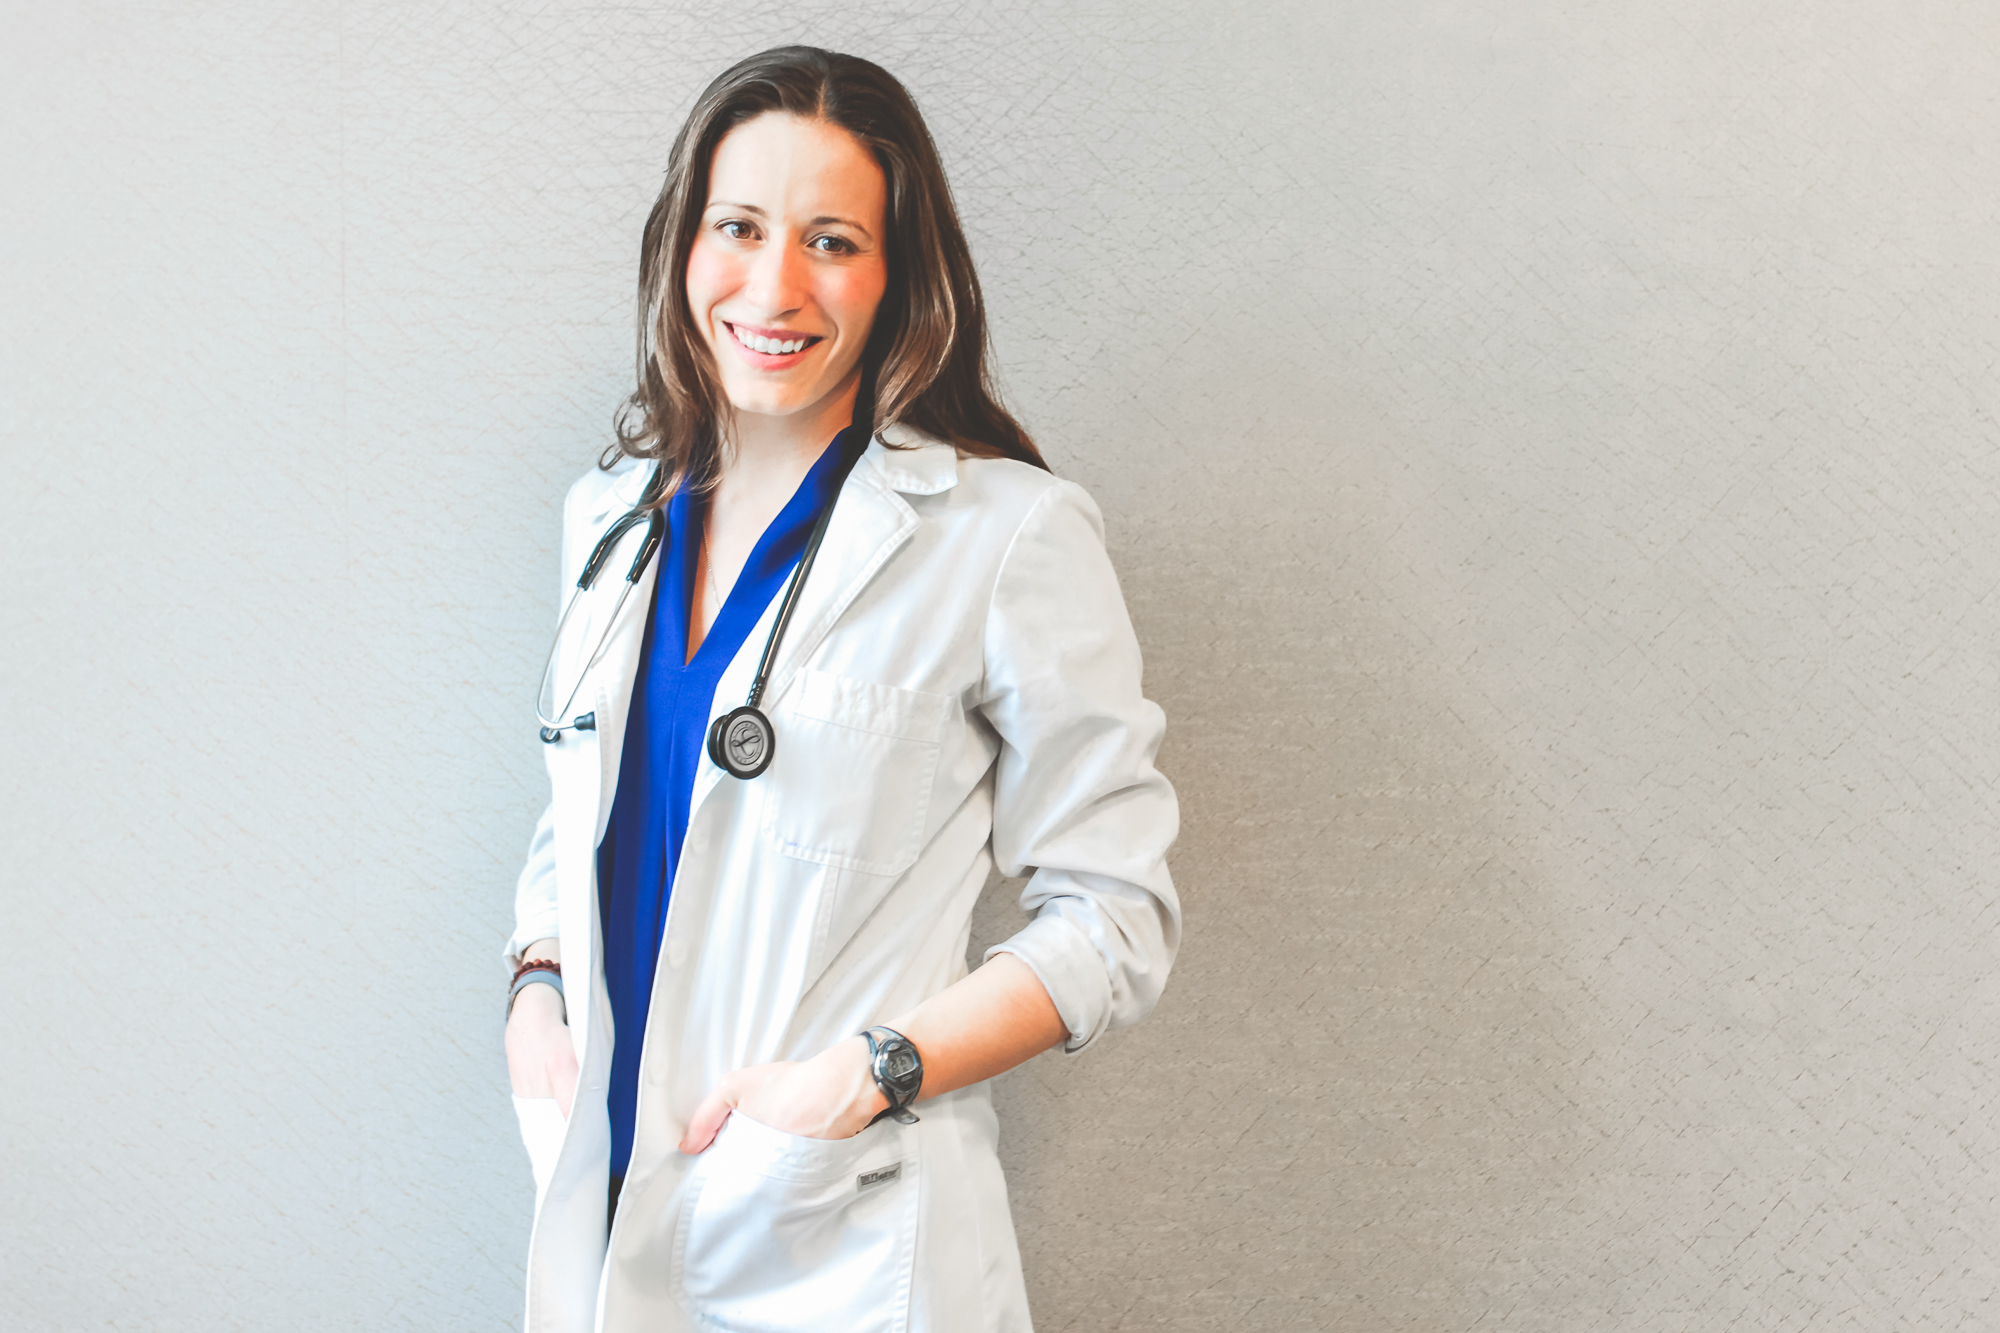 Bio: Dr. Briana Botsford, BSc, BPHE, ND, is naturopathic doctor practicing in Edmonton, Alberta, Canada. Dr. Botsford is an ironman triathlete and practices family medicine with a focus in sports medicine, women's health and mental well-being. She has been racing primarily long-course triathlon for almost 10 years and is excited to be participating in her first ITU long-course world championship in Penticton this year. You can find Dr. Botsford online at  www.drbrianabotsford.com ,  www.greenapplehealthcare.ca  and on  Facebook  and  Instagram .